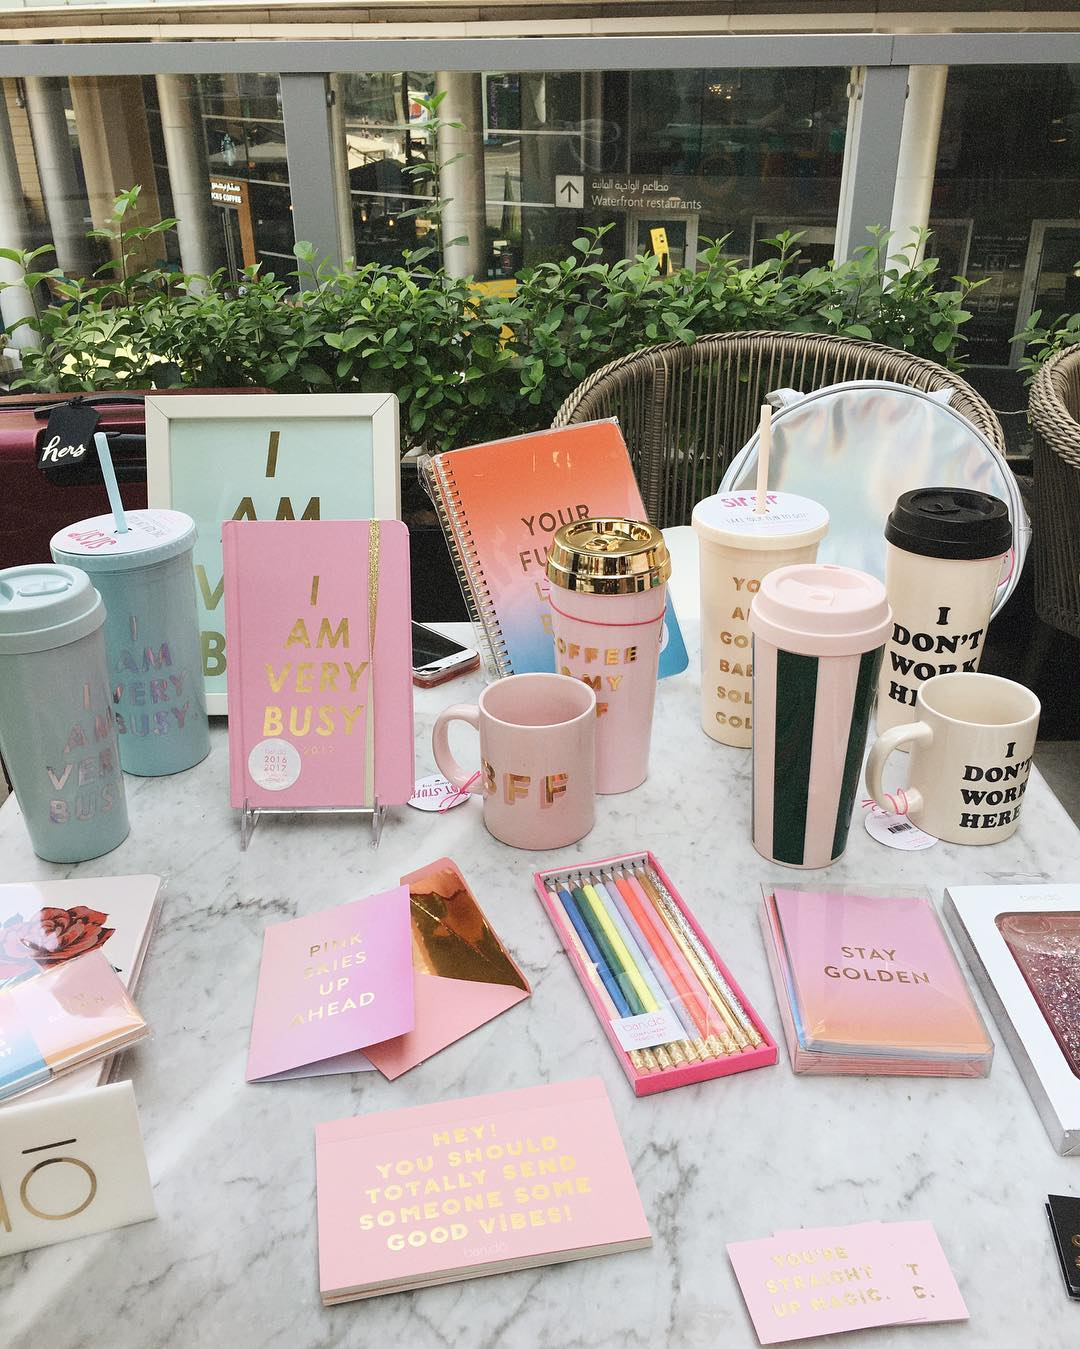 All things pretty and pink deserves an Instagram post shopbandohellip